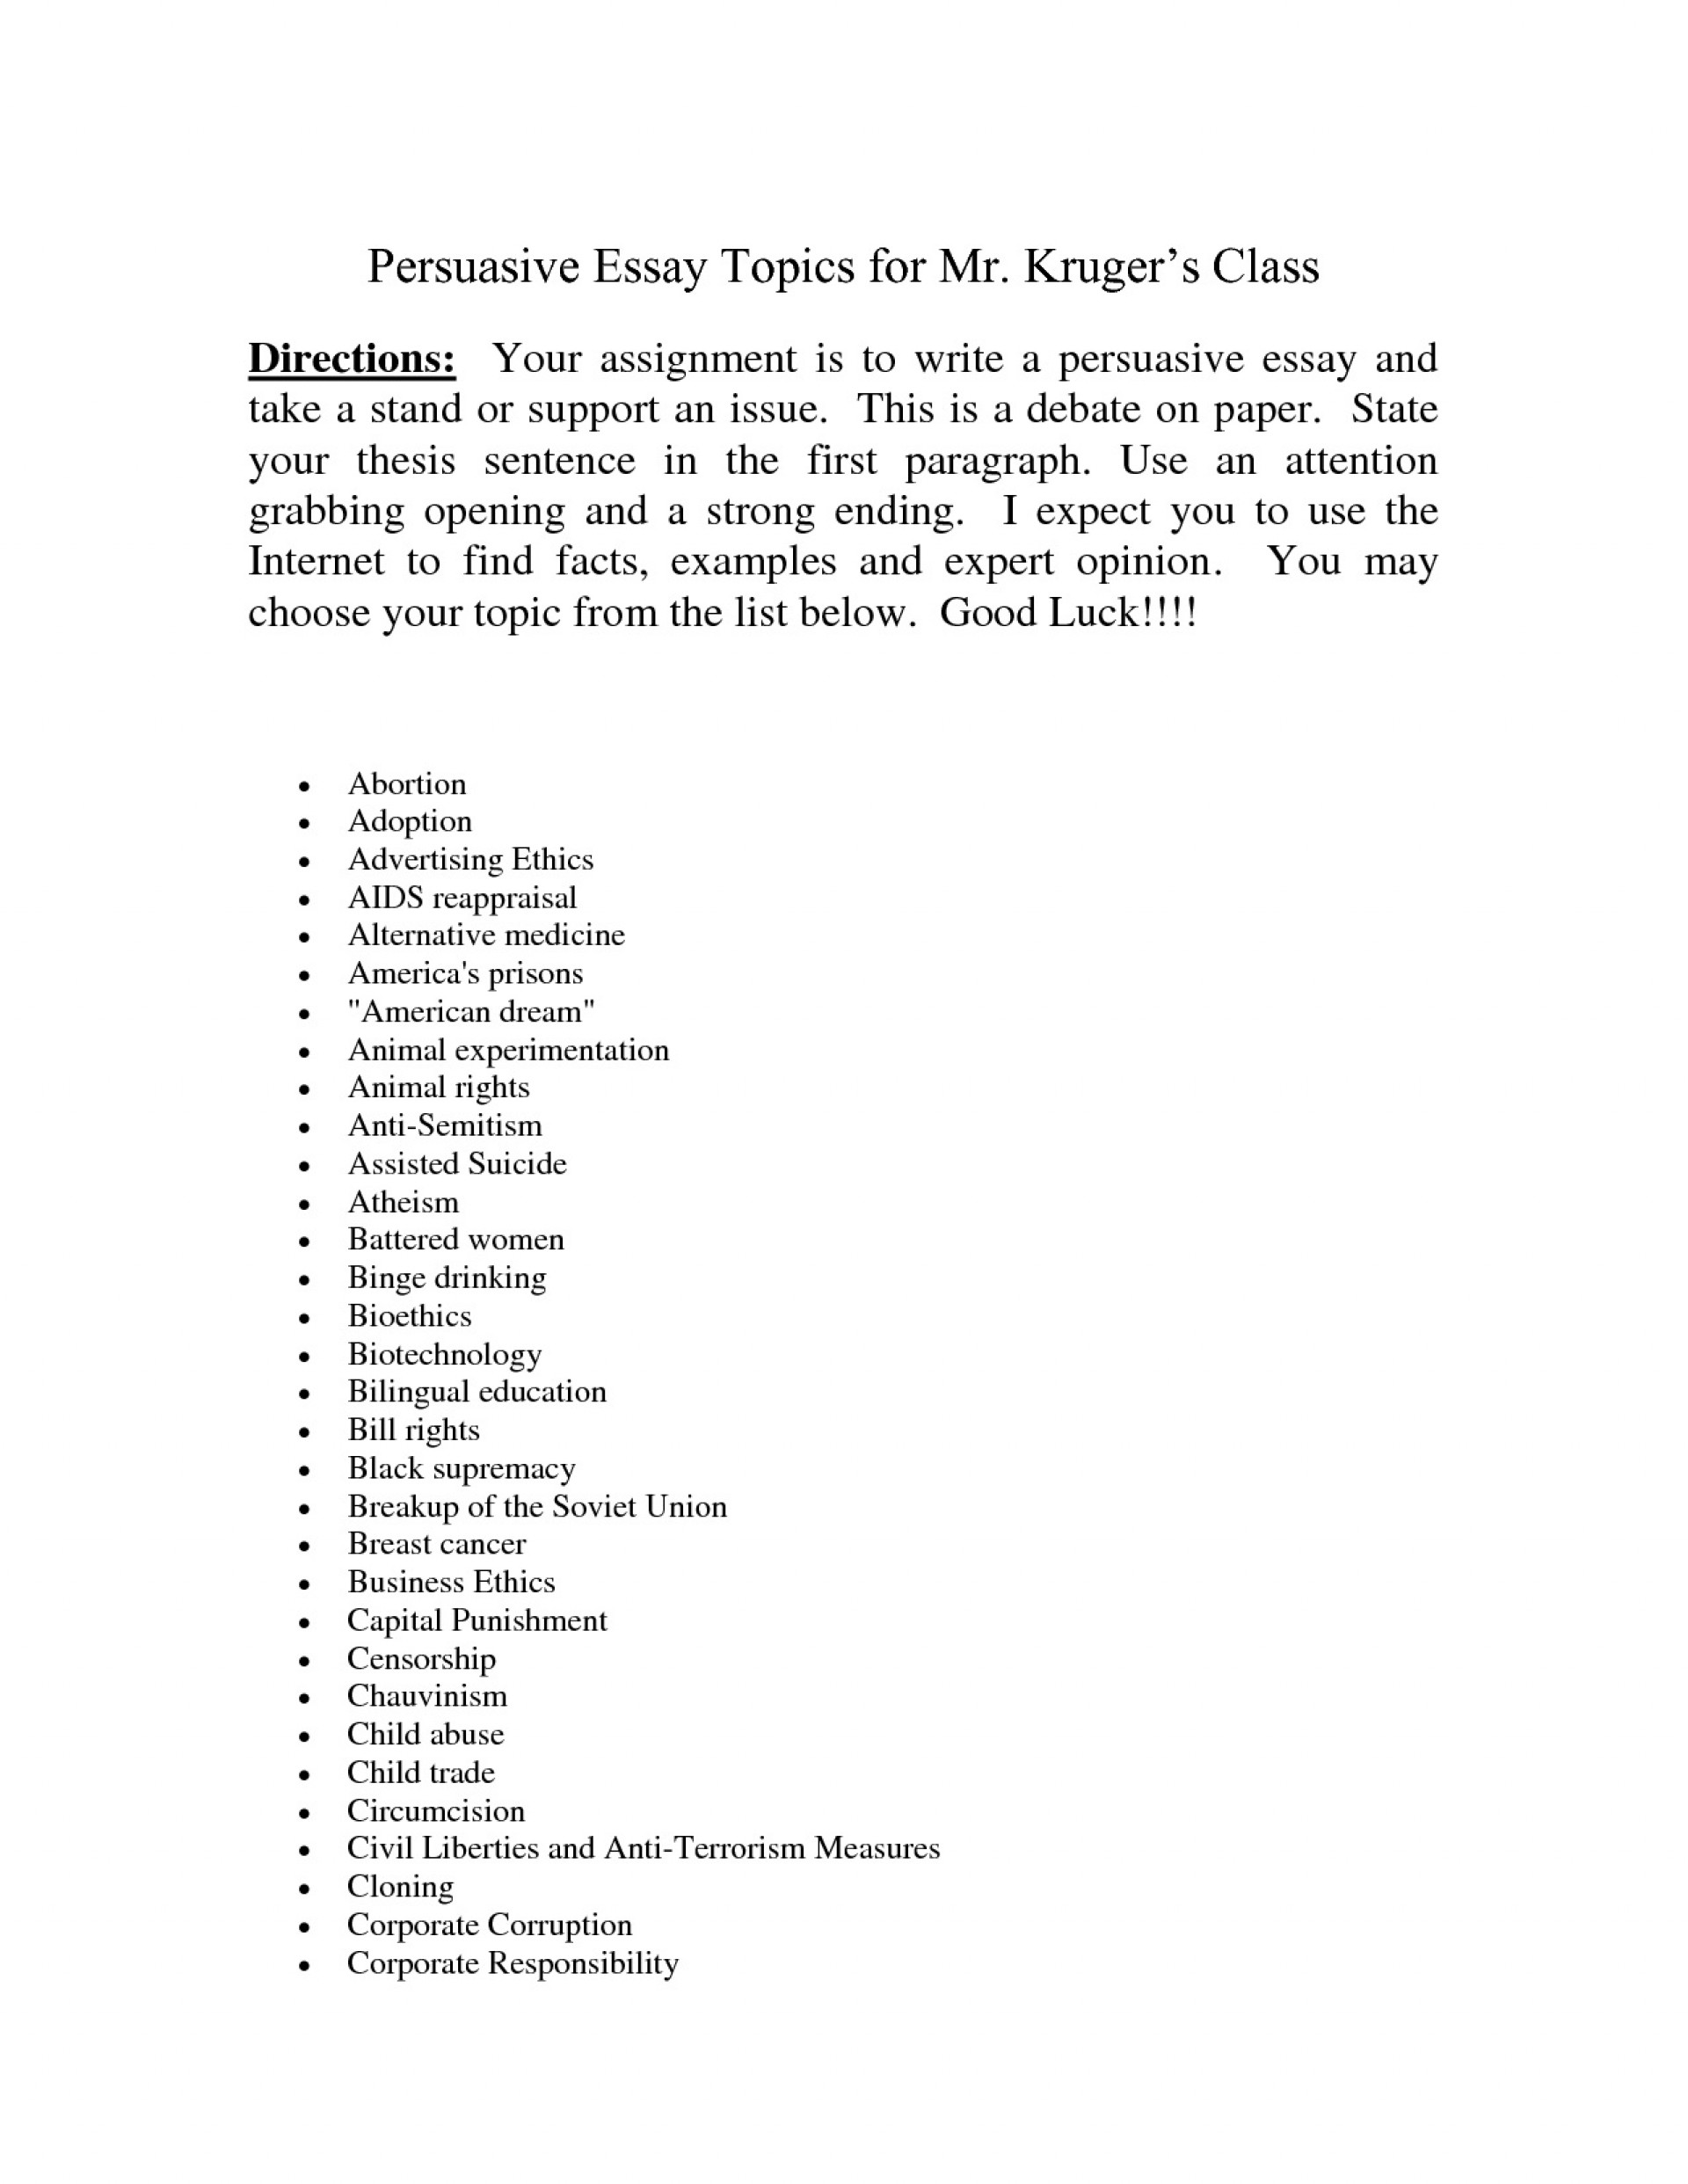 006 Essay Example Interesting Persuasive Topics Argumentative Writings And Essays Sports Sport For About Throughout Argum Medicine Dealing With Unforgettable Cool Speech College Students Easy 1920